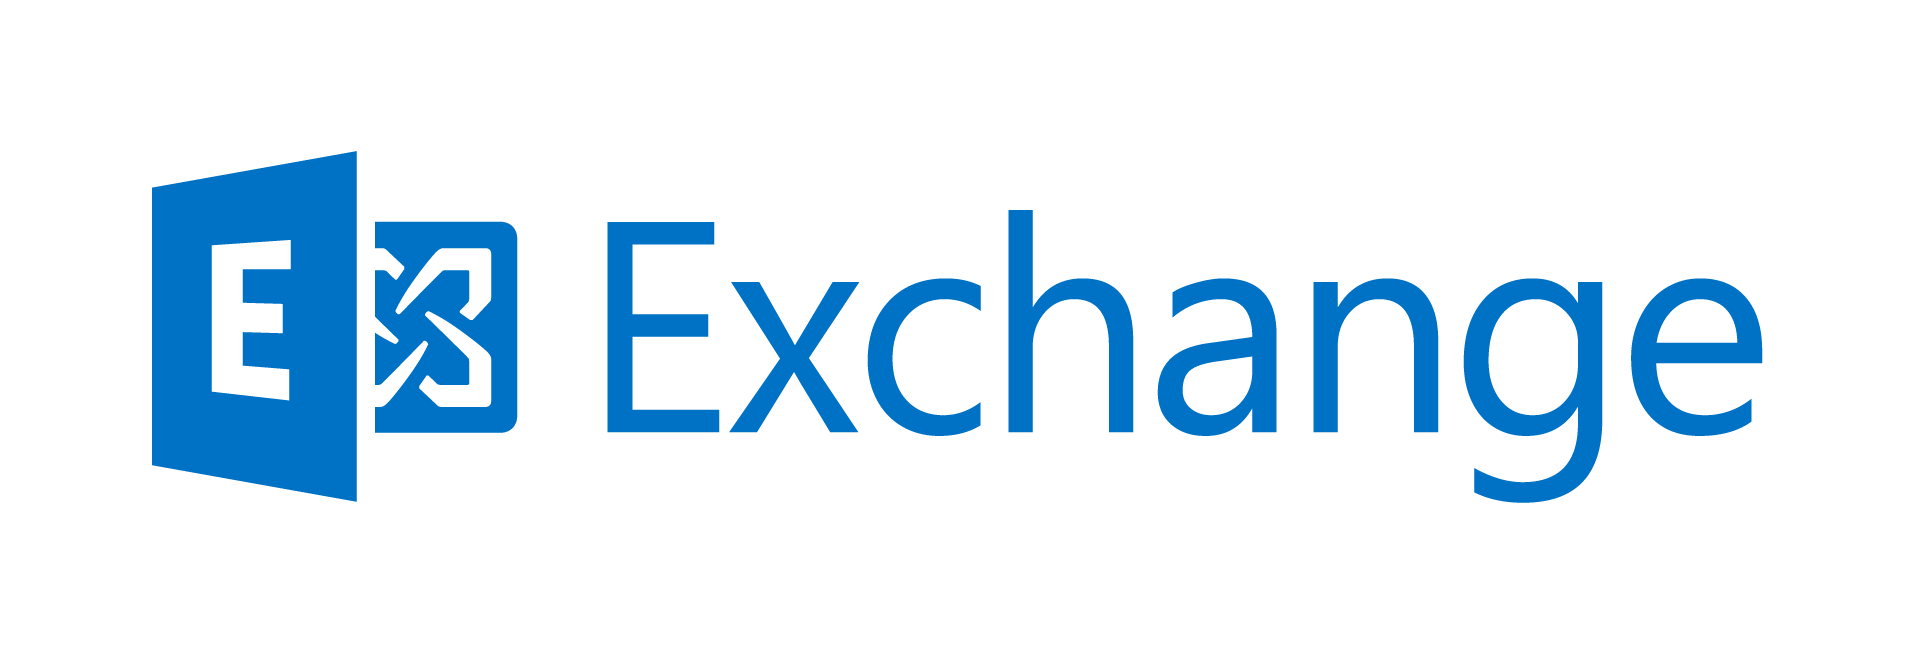 Image result for microsoft exchange logo